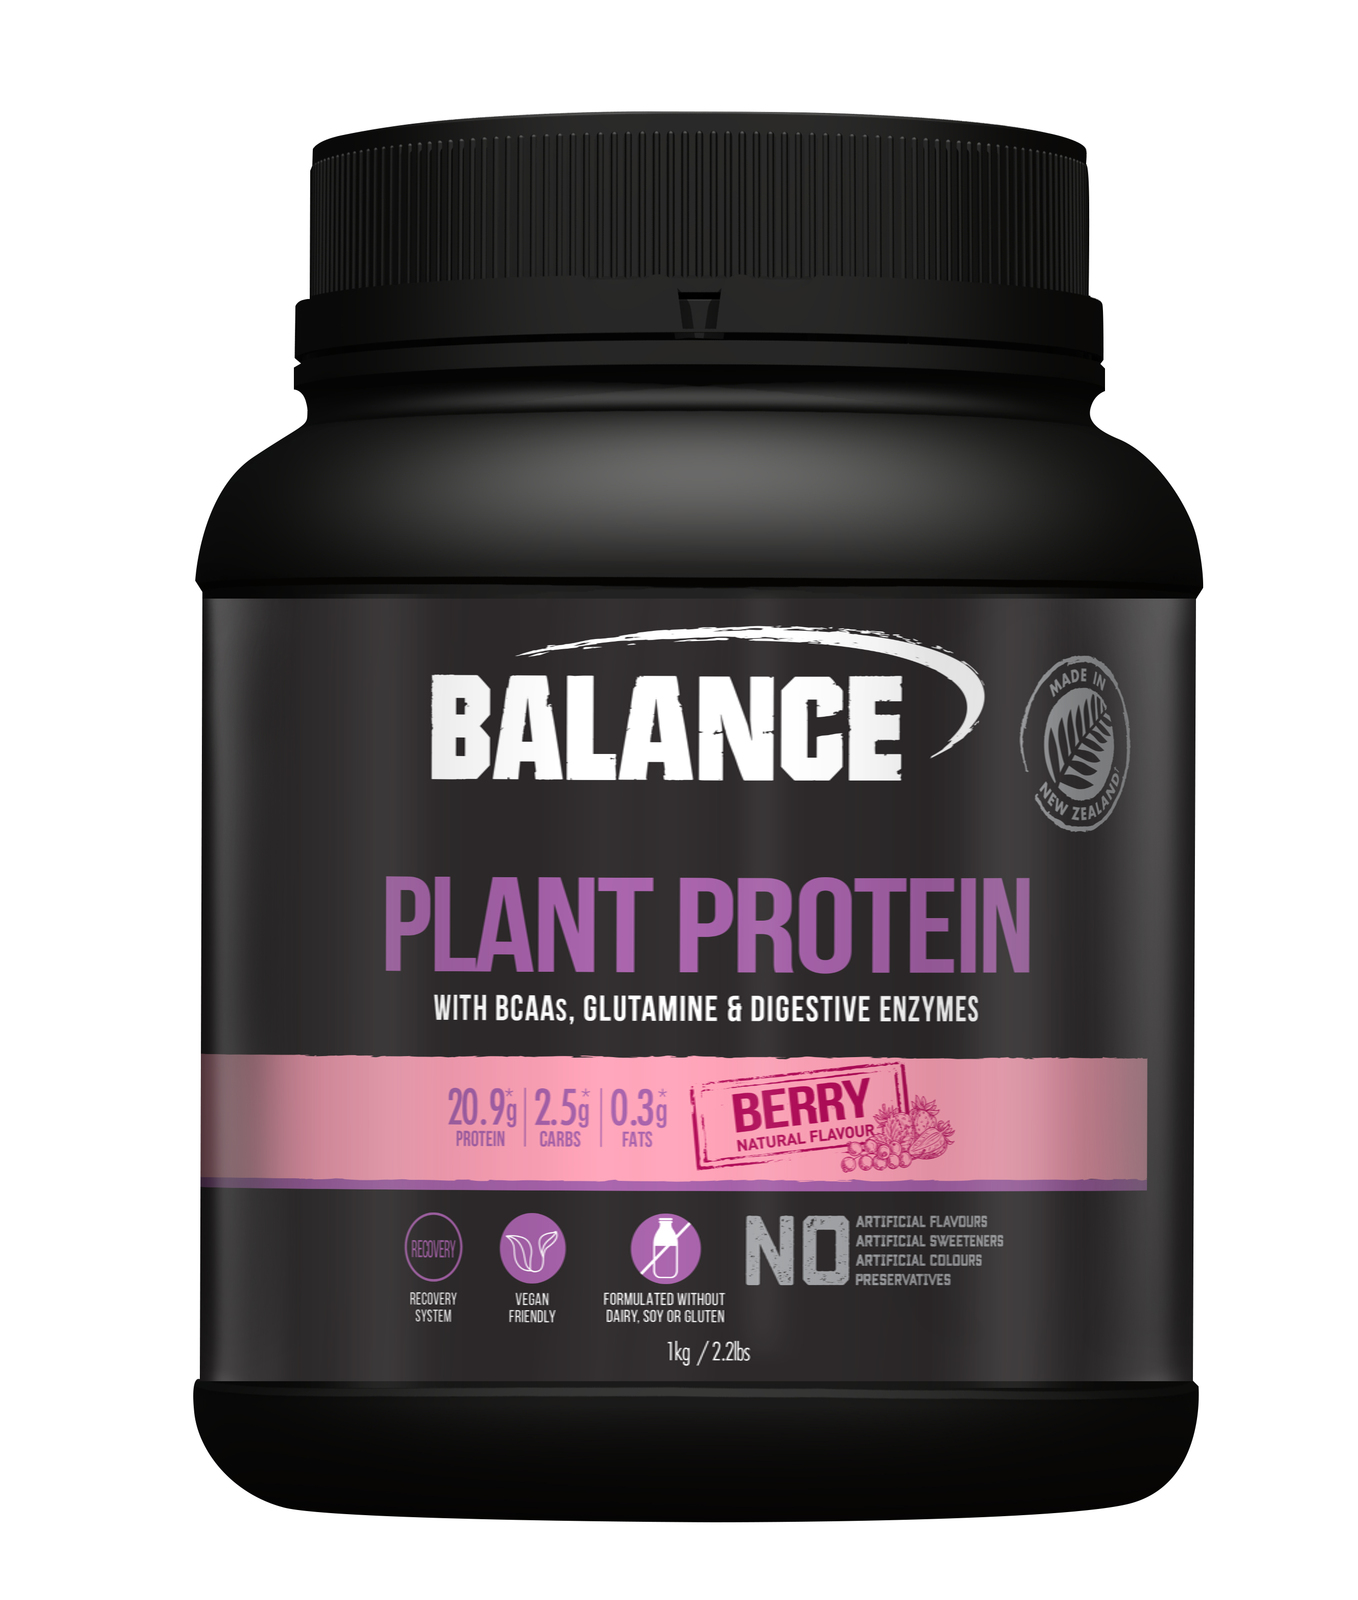 Balance Plant Protein - Berry (1kg) image